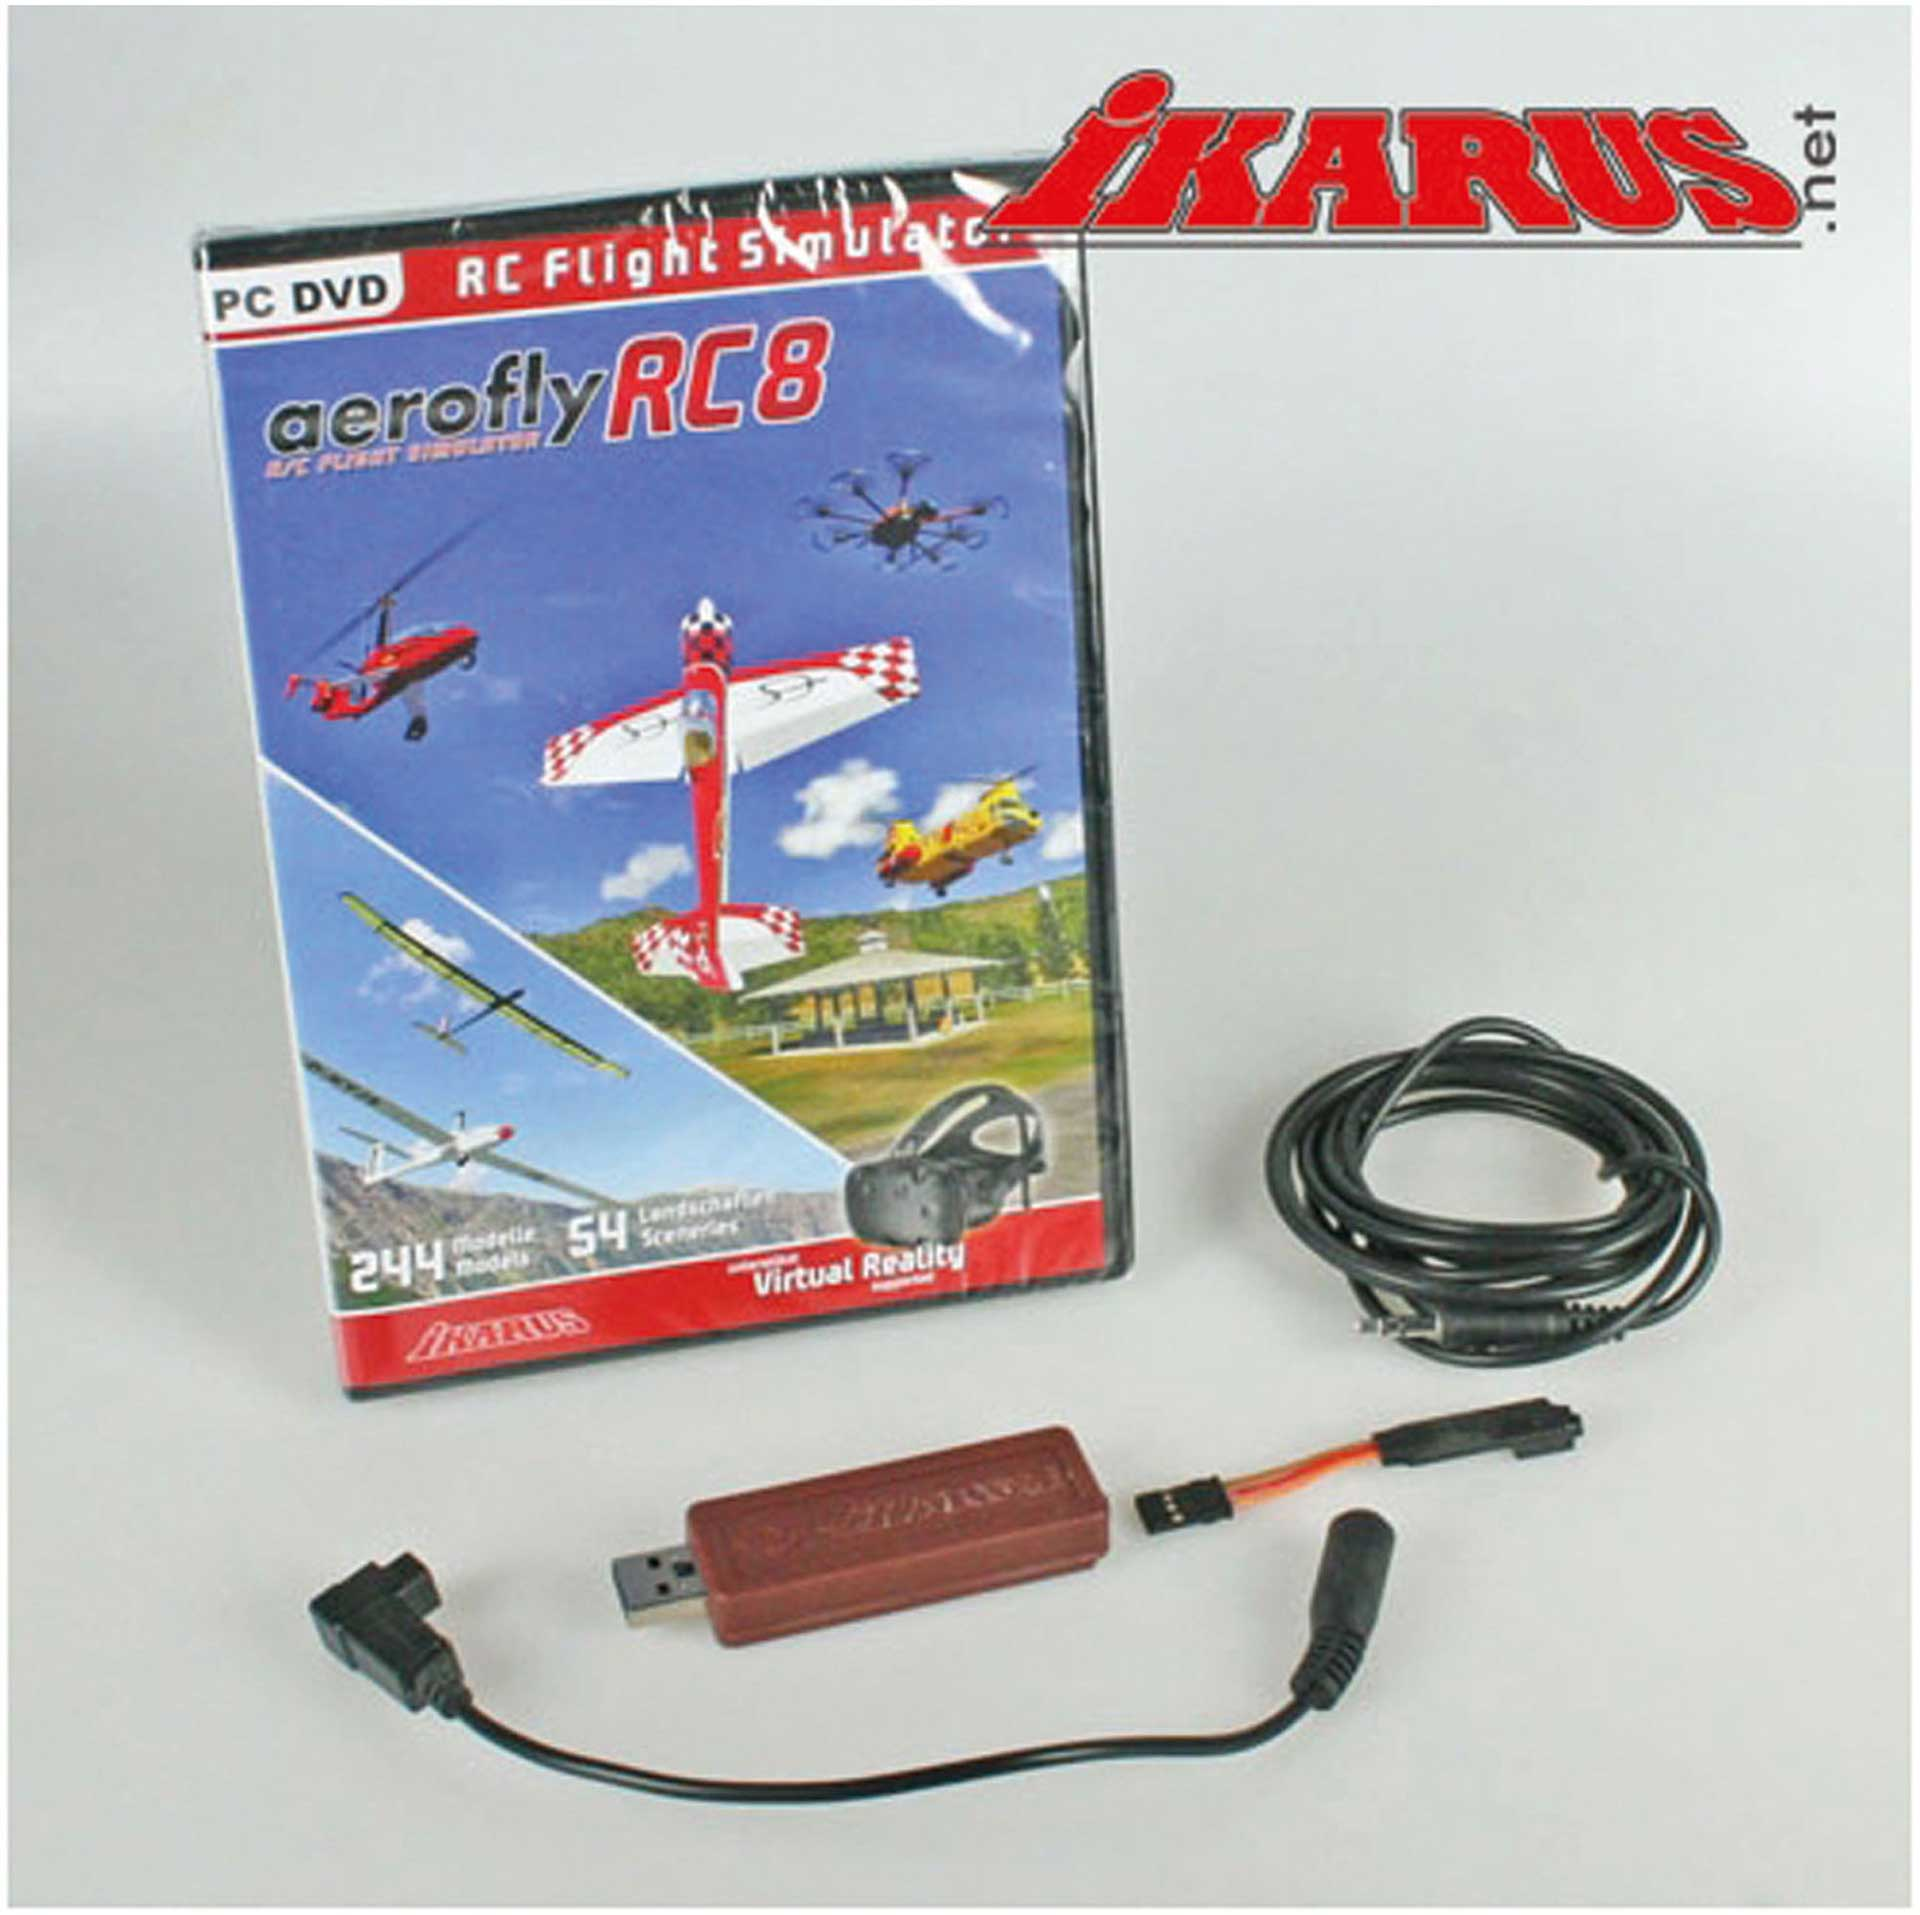 IKARUS AEROFLY RC8 WITH INTERFACE FOR FUTABA